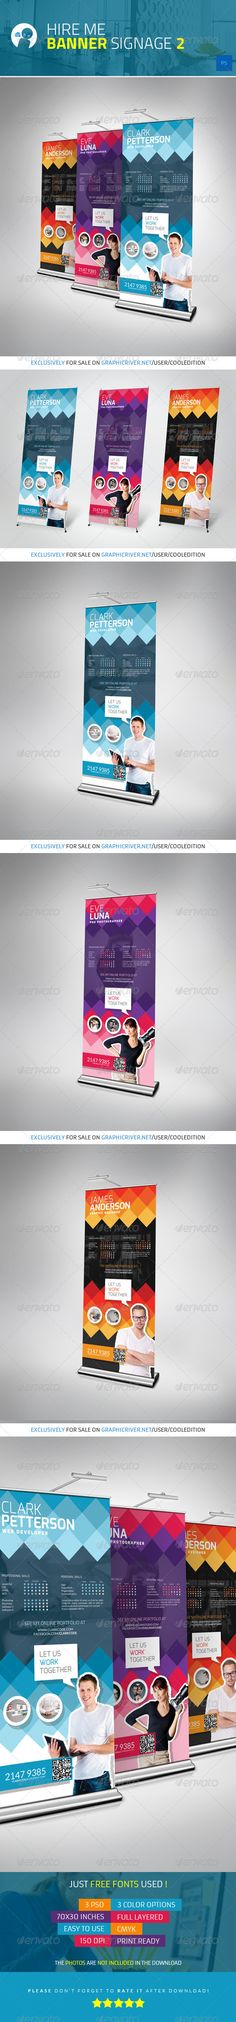 Buy Multipurpose Banner Signage 8 by cooledition on GraphicRiver. Multipurpose Banner Signage 8 Suitable for: Creative Brochure, Brochure Design, Signage Design, Banner Design, Standee Design, Commercial Signs, Roll Up Design, Pop Up Banner, Letterhead Template